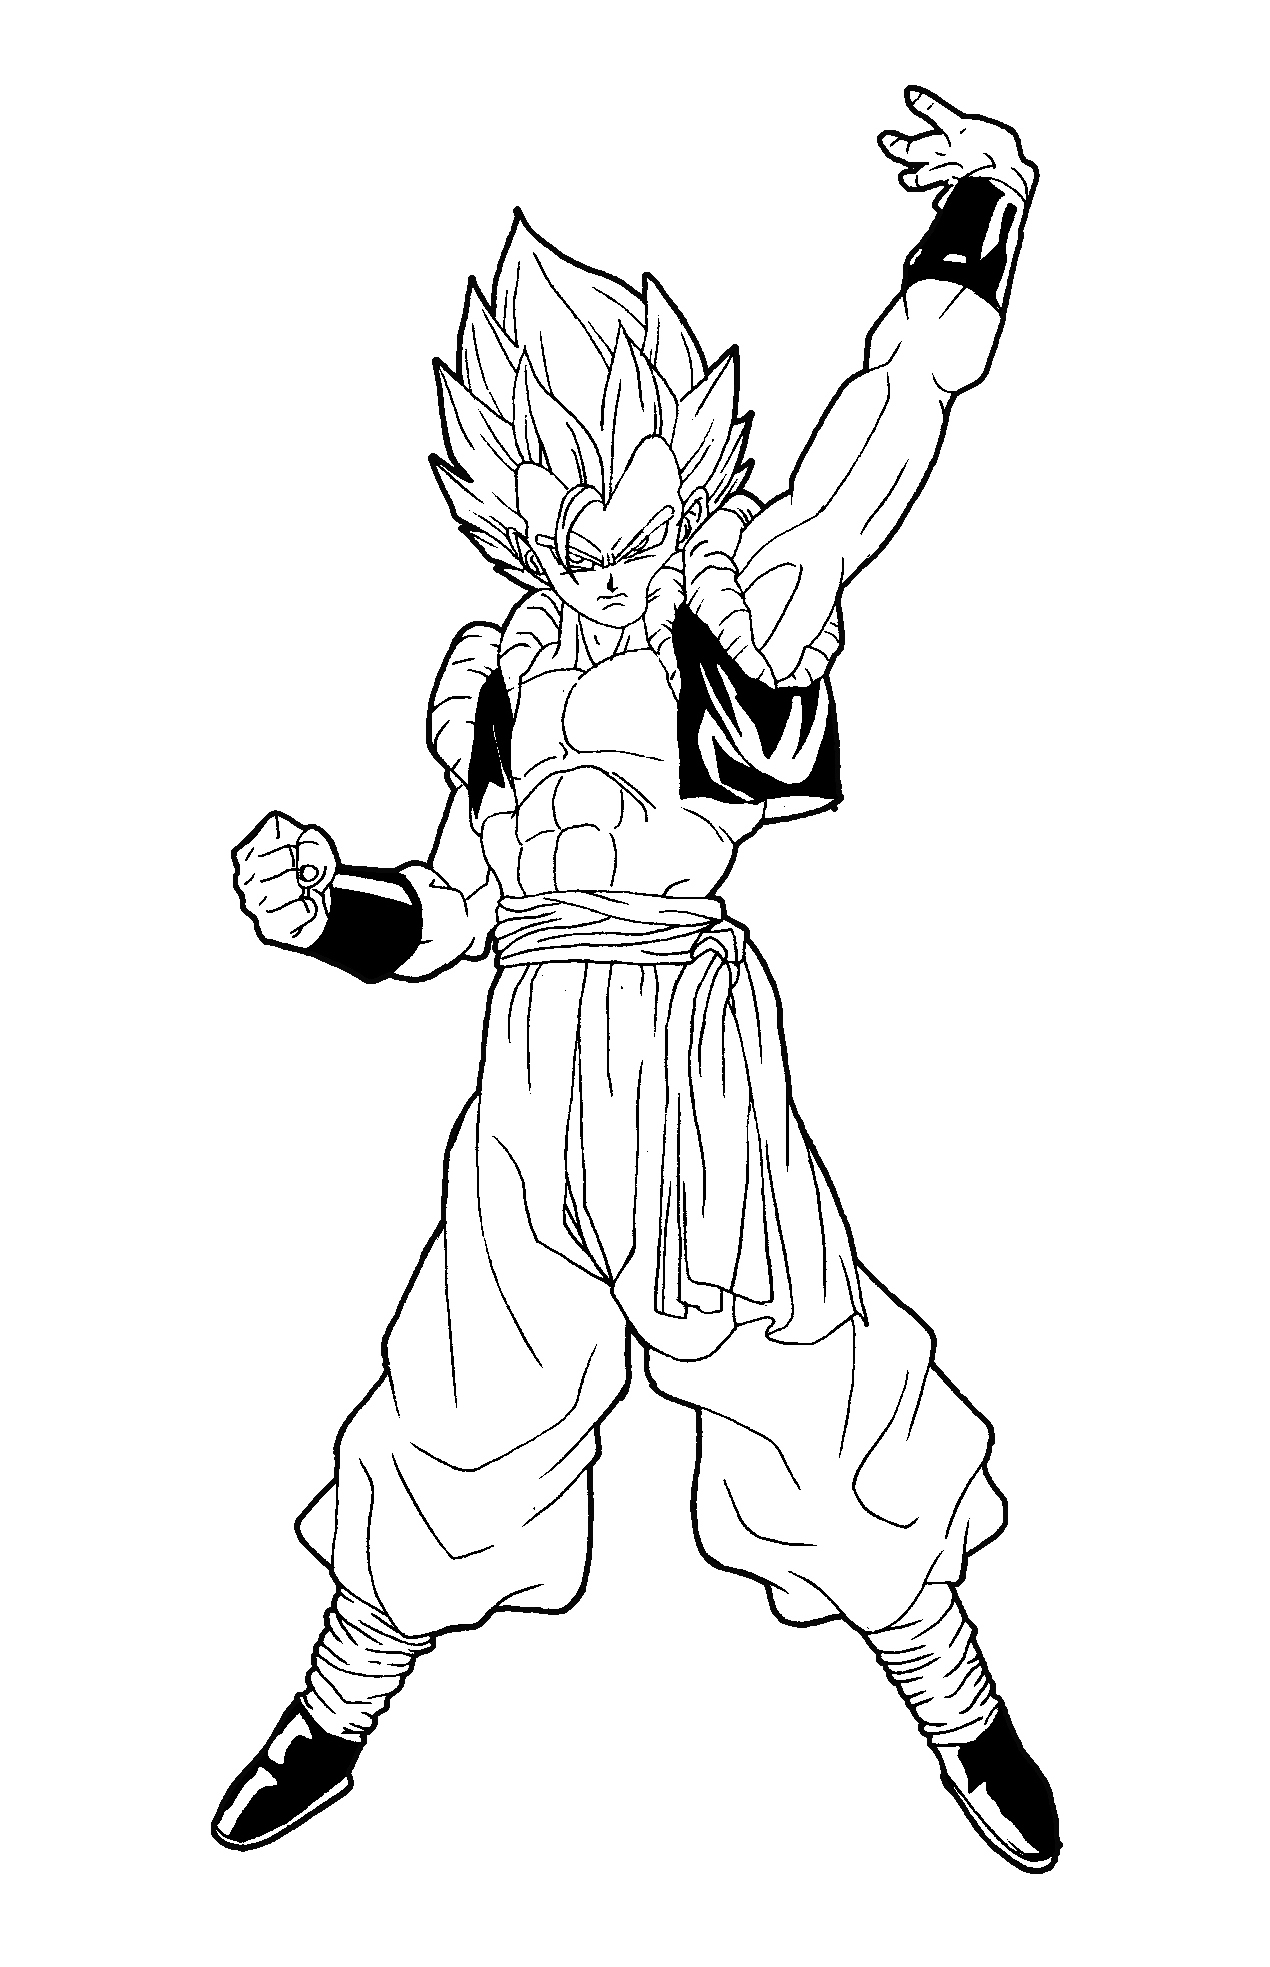 gogeta ssj3 coloring pages coloring pages. Black Bedroom Furniture Sets. Home Design Ideas